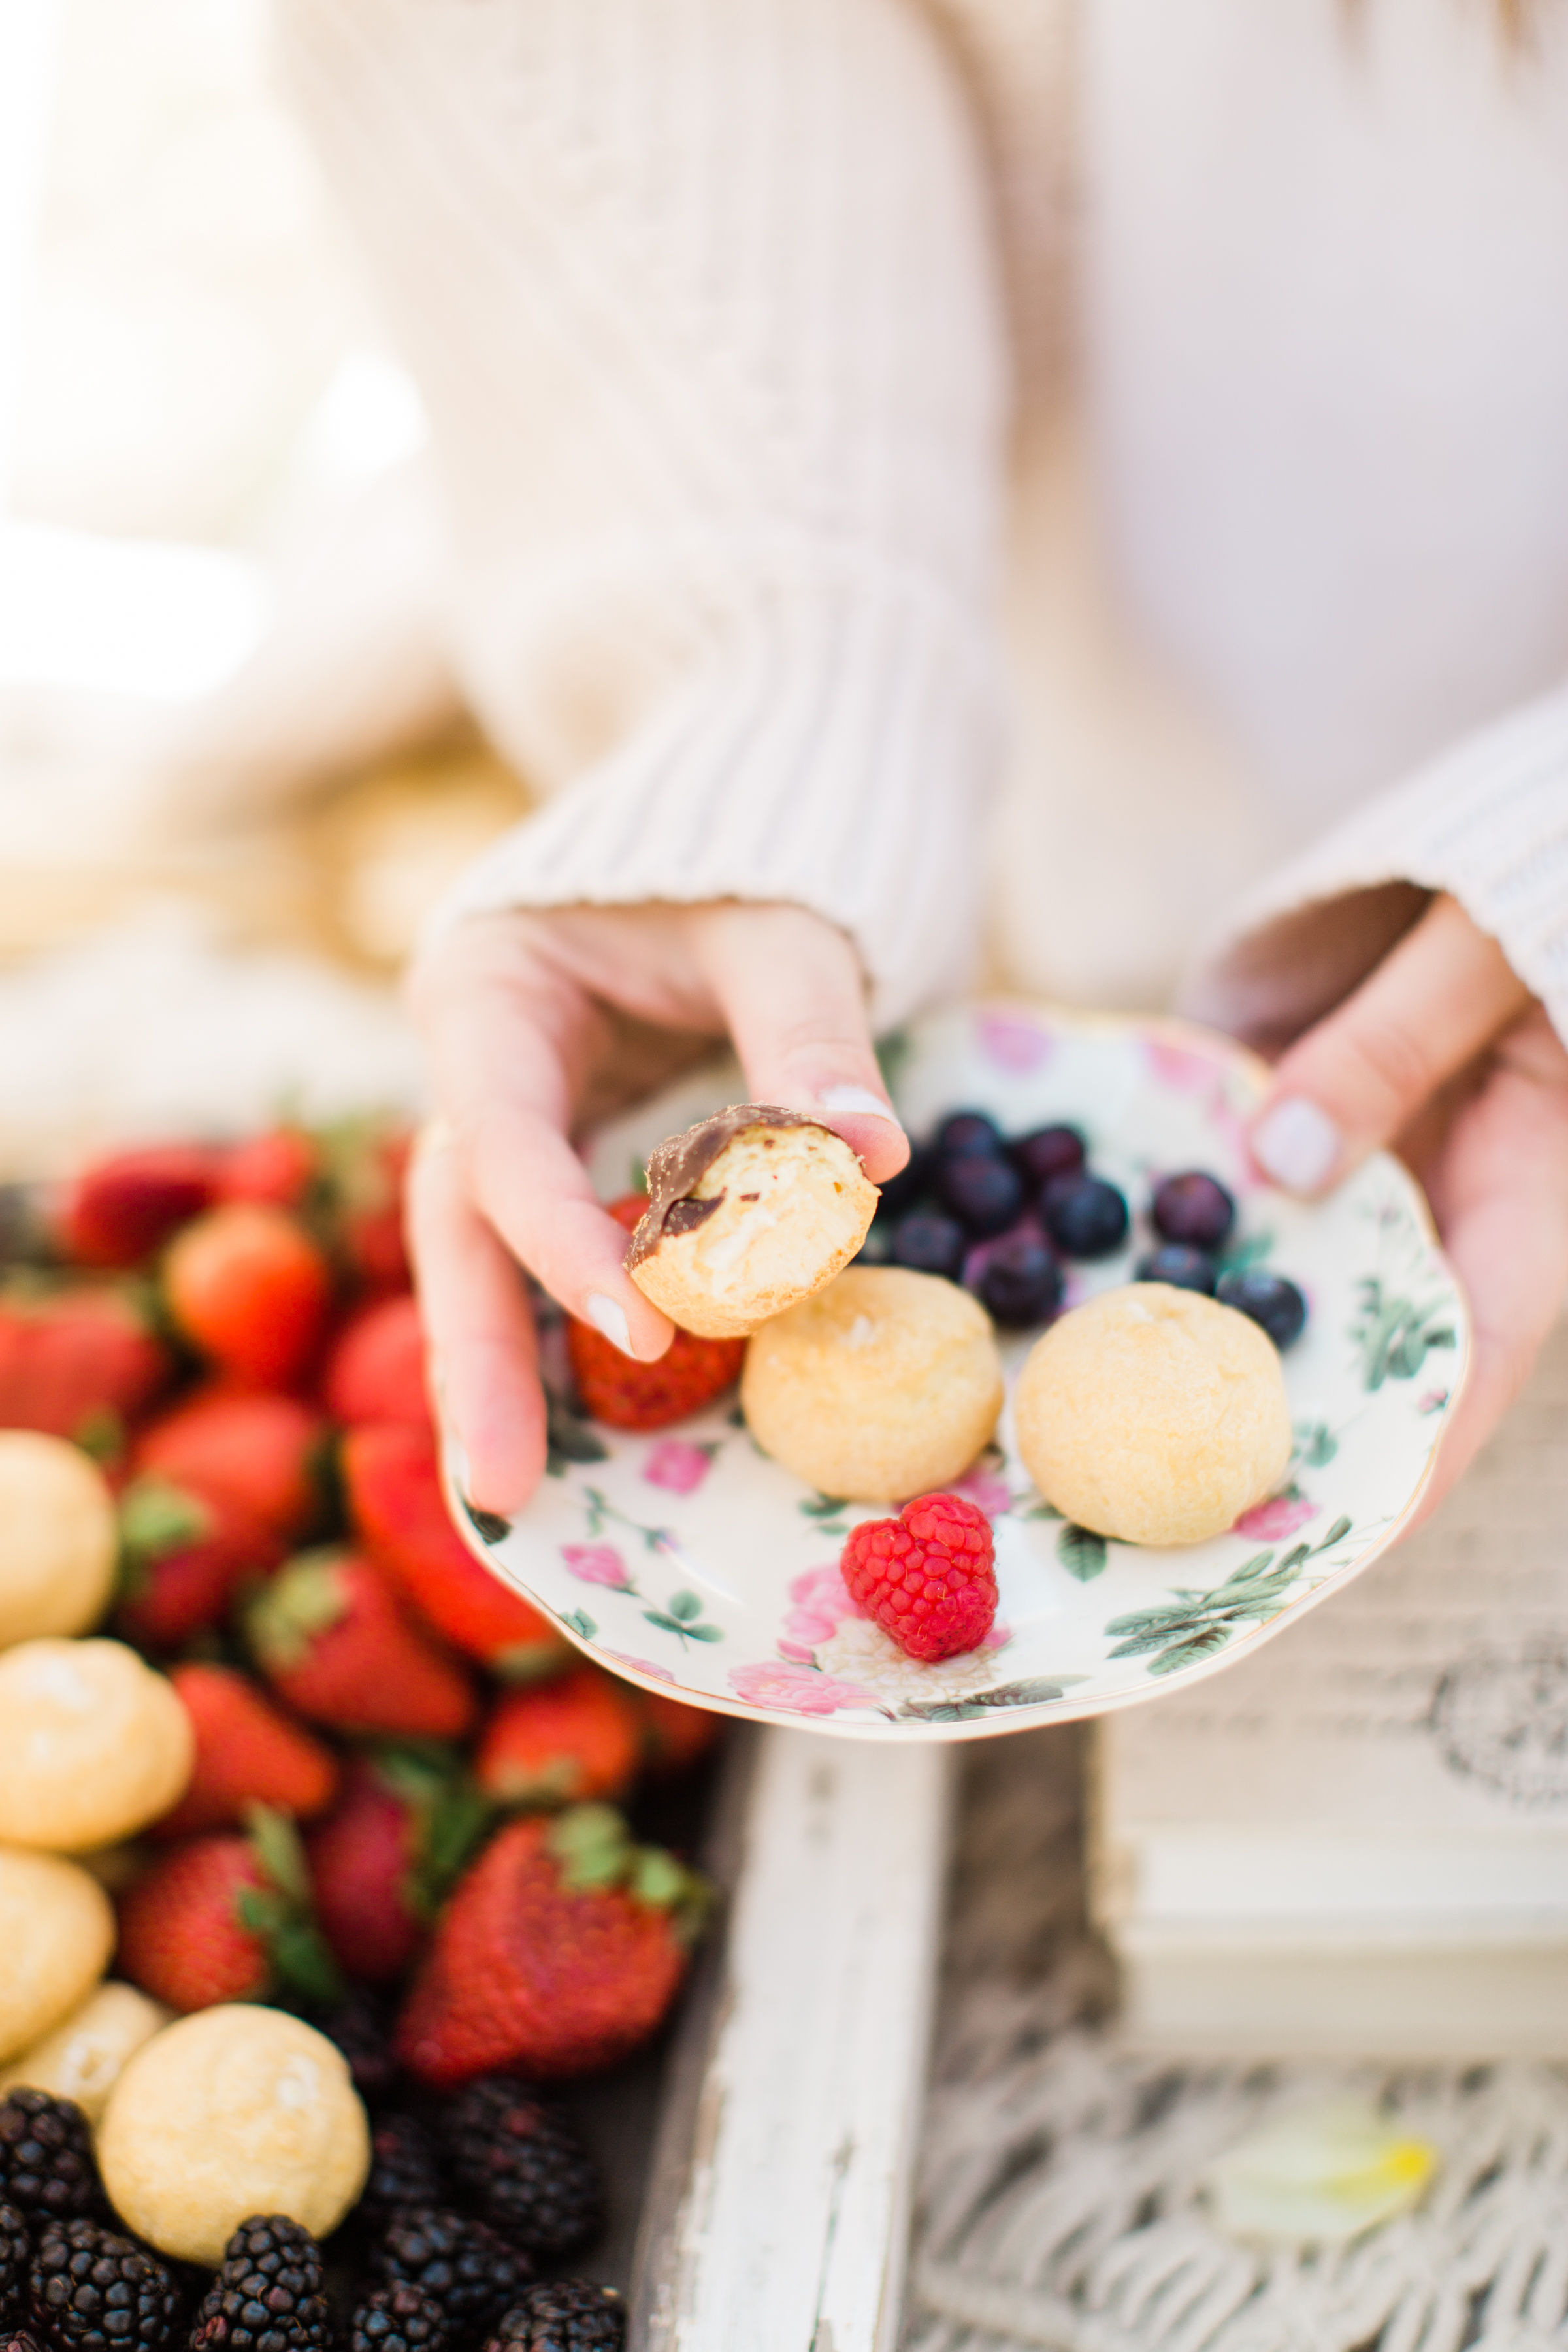 Welcome the sunshine with a whimsical outdoor spring tea and dessert party - Delizza Puffs